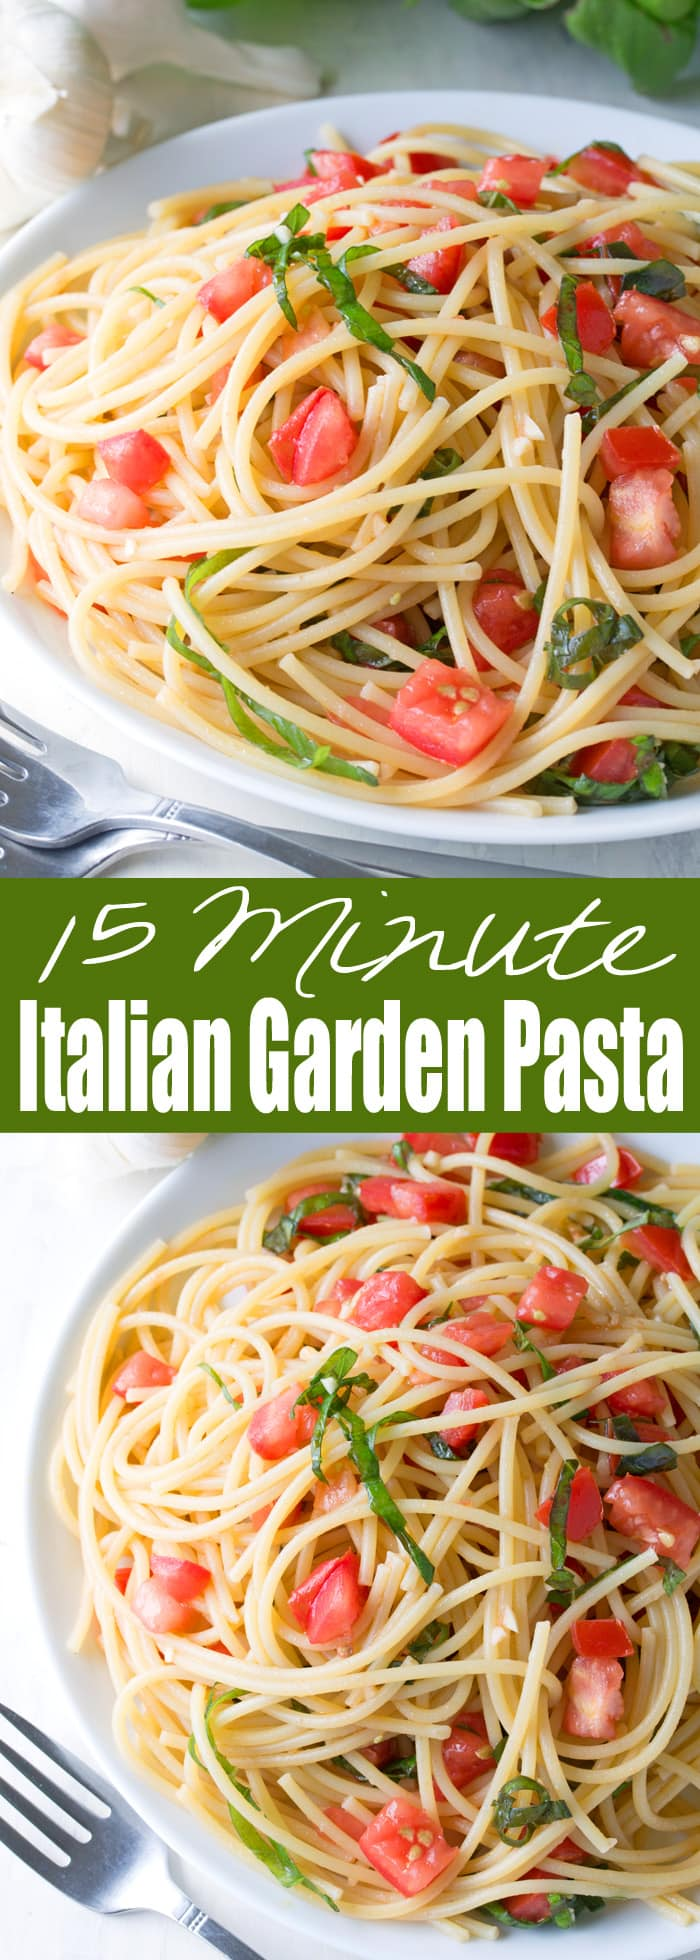 This fresh summer pasta can be eaten hot or cold and comes together in just minutes. It's 15 Minute Italian Garden Pasta and it's amazingly delicious!